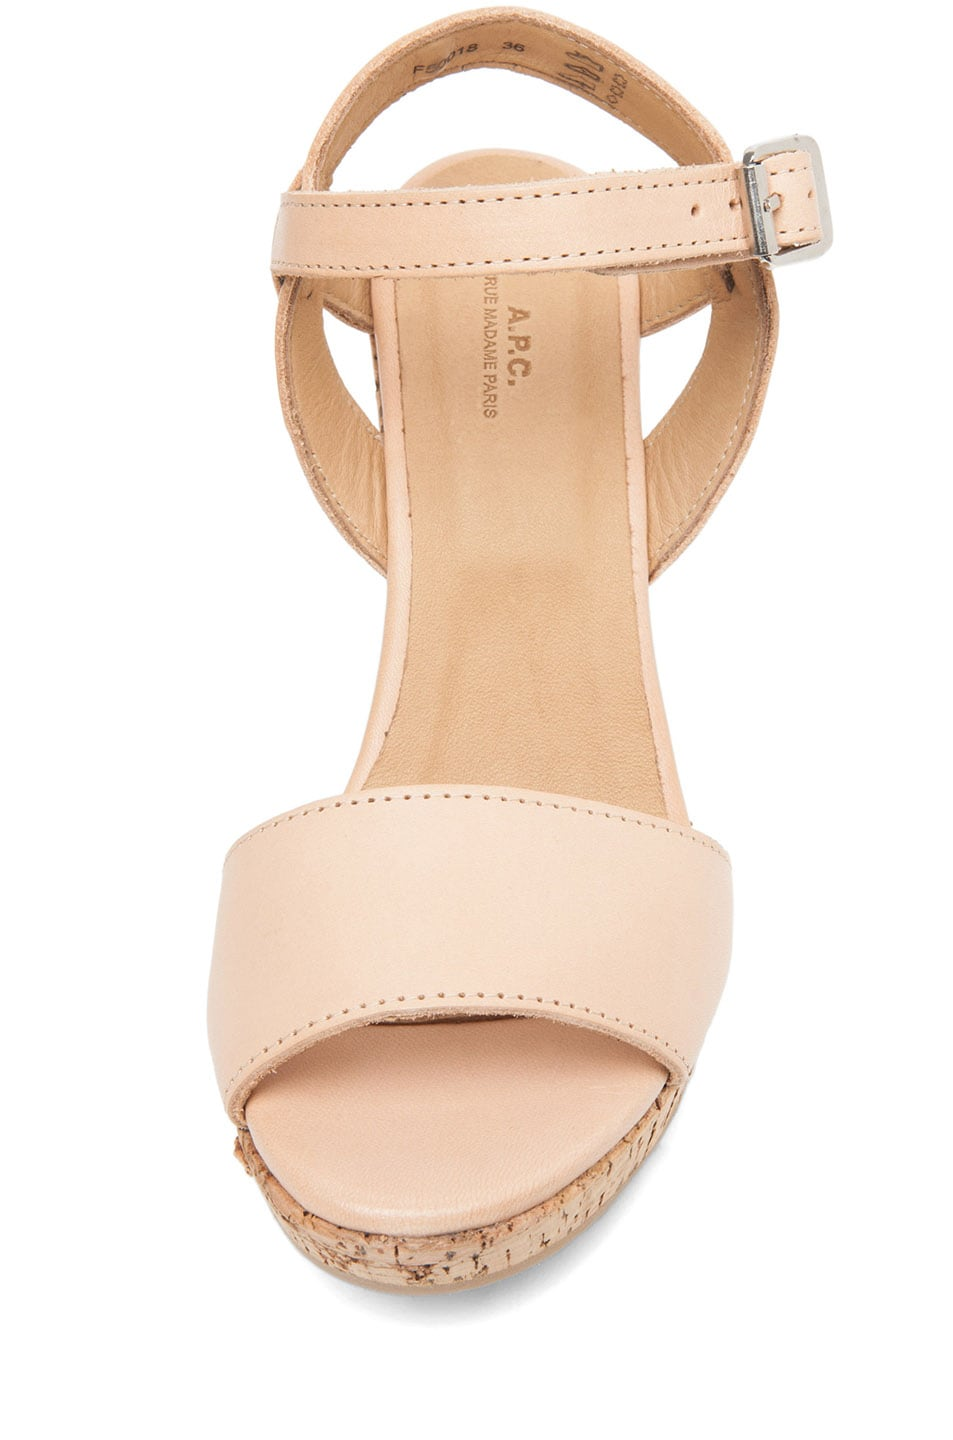 Image 4 of A.P.C. Lisse Calfskin Leather Sandals in Beige Rose